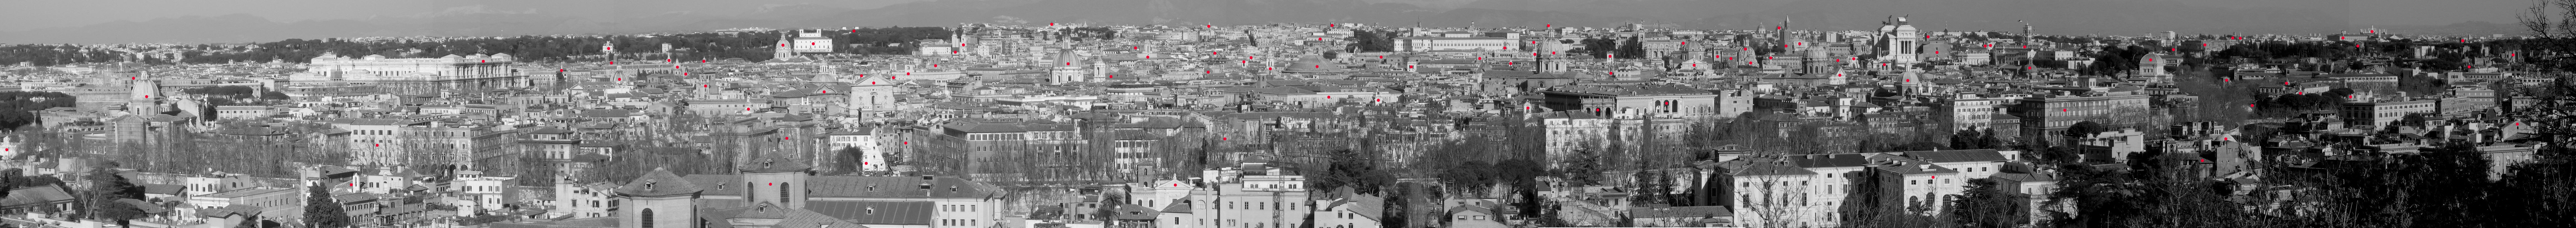 Grand View of Rome from Villa Lante - Clickable View